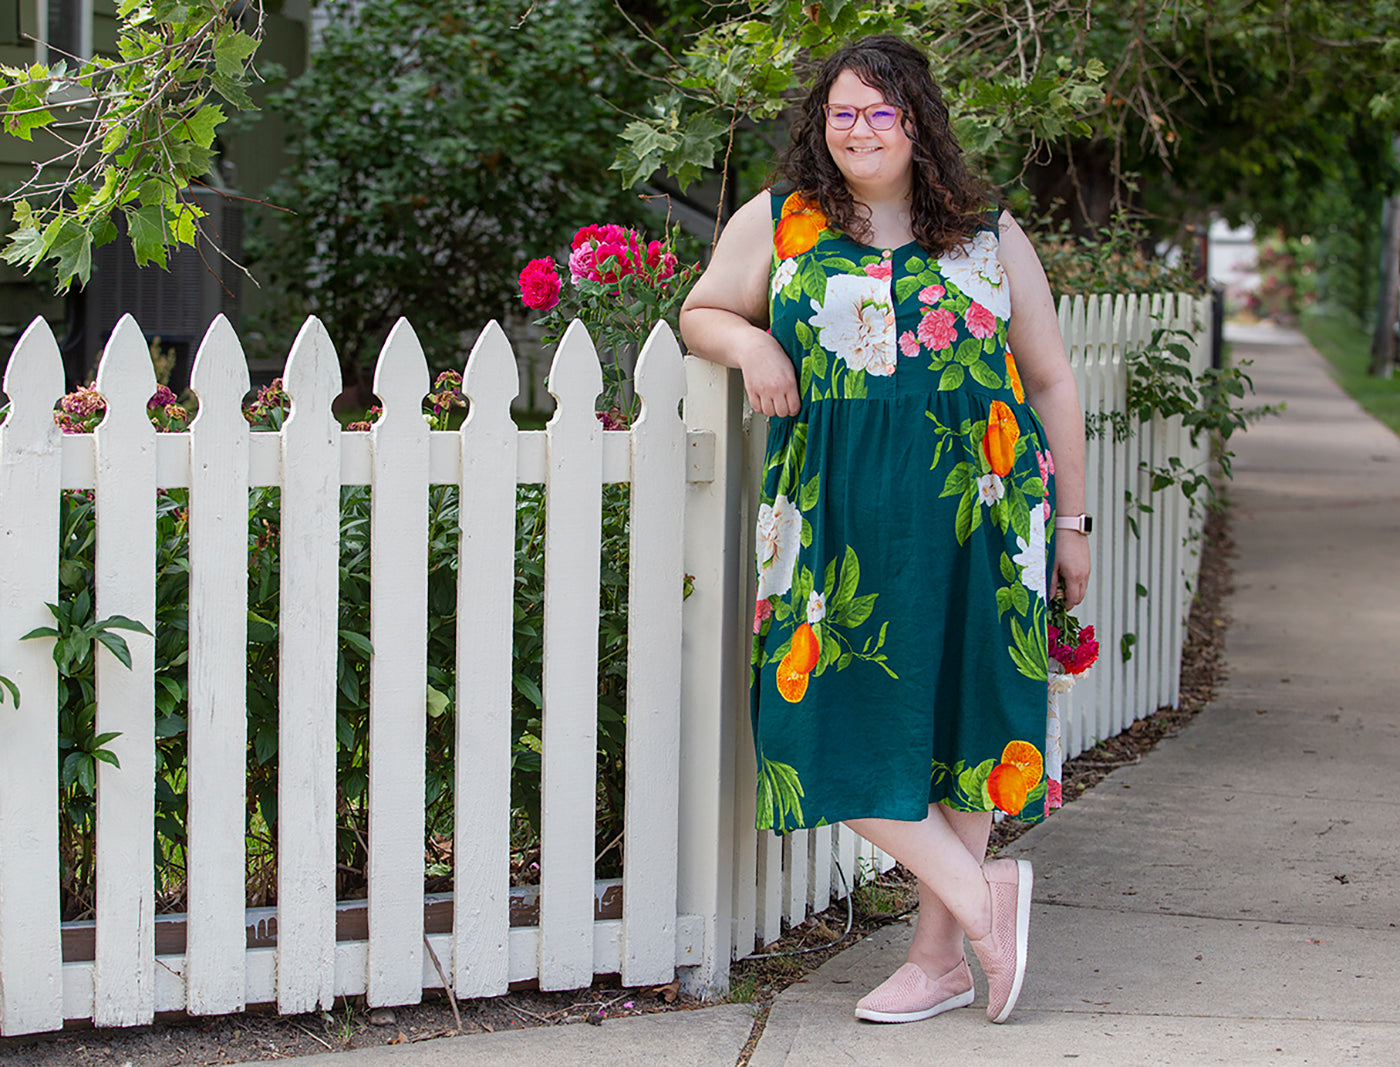 This is an image of a woman wearing a colorful. flower covered dress standing next to a white picket fence and rose bush